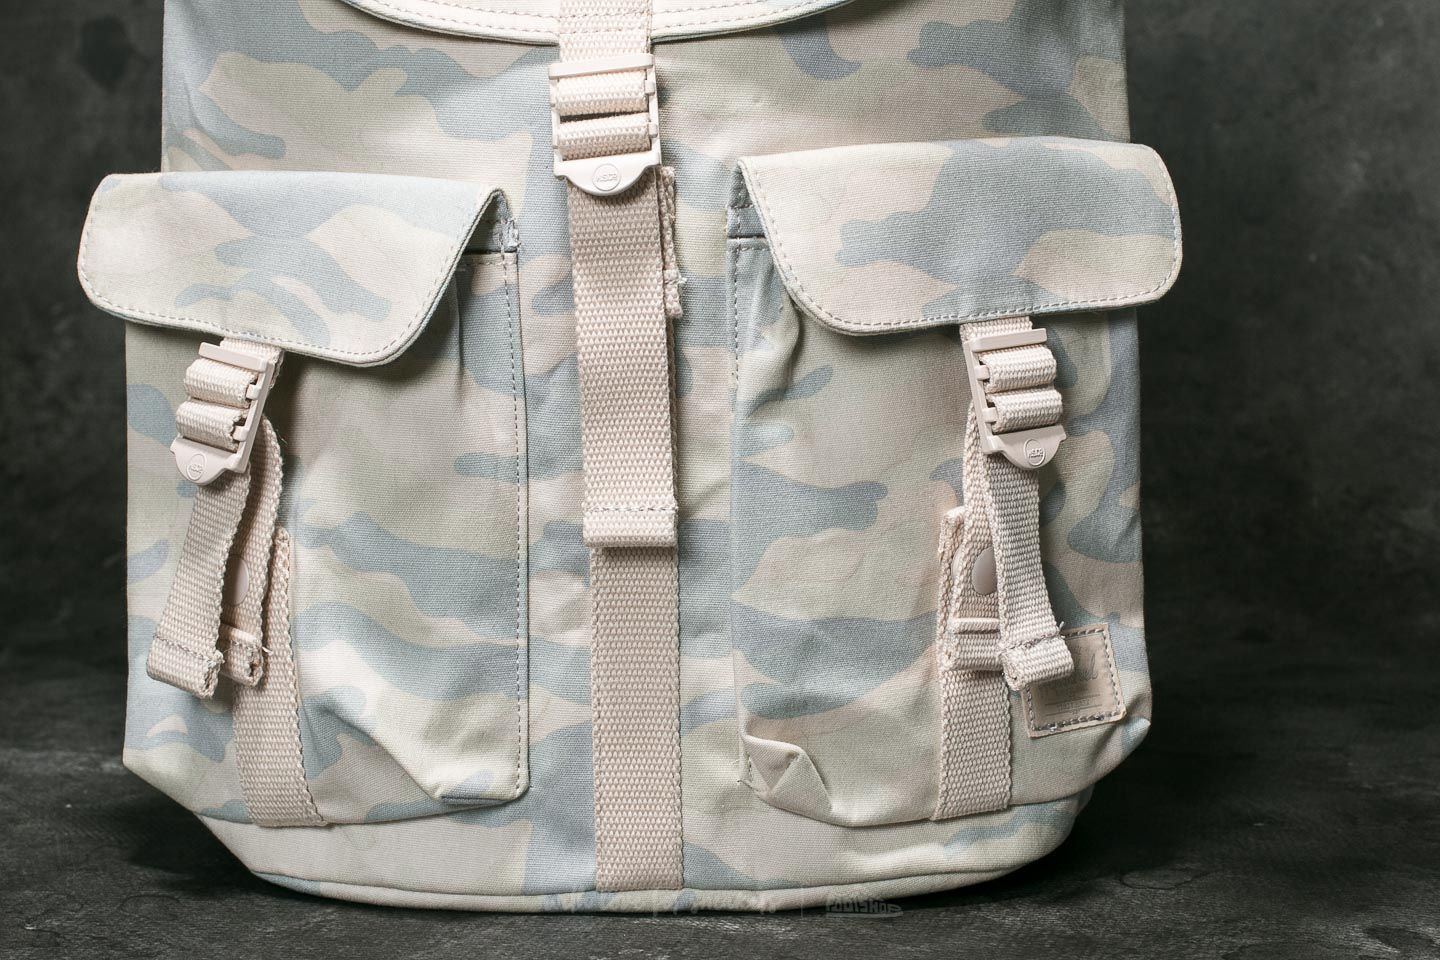 375419a3365 Herschel Supply Co. Dawson Backpack Washed Canvas Camo 133  82